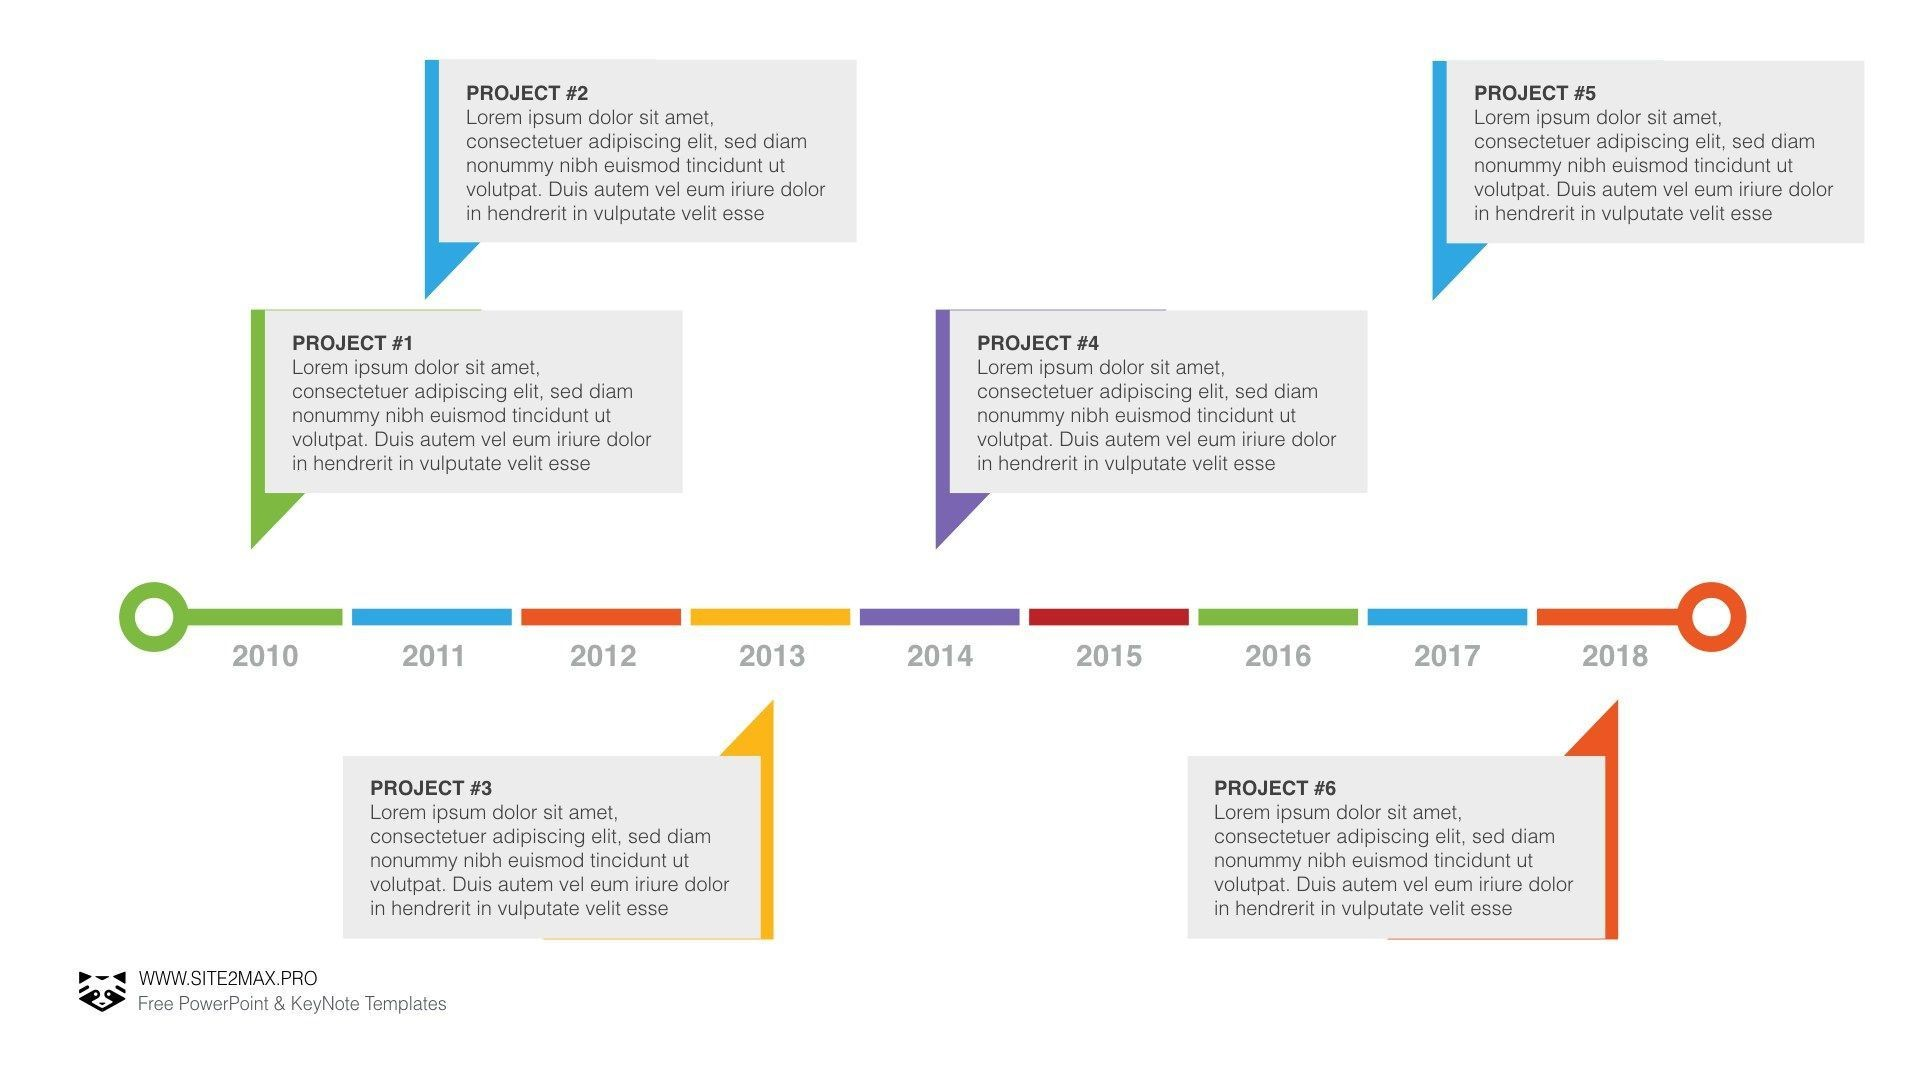 002 Shocking Timeline Template For Word 2016 High Definition 1920